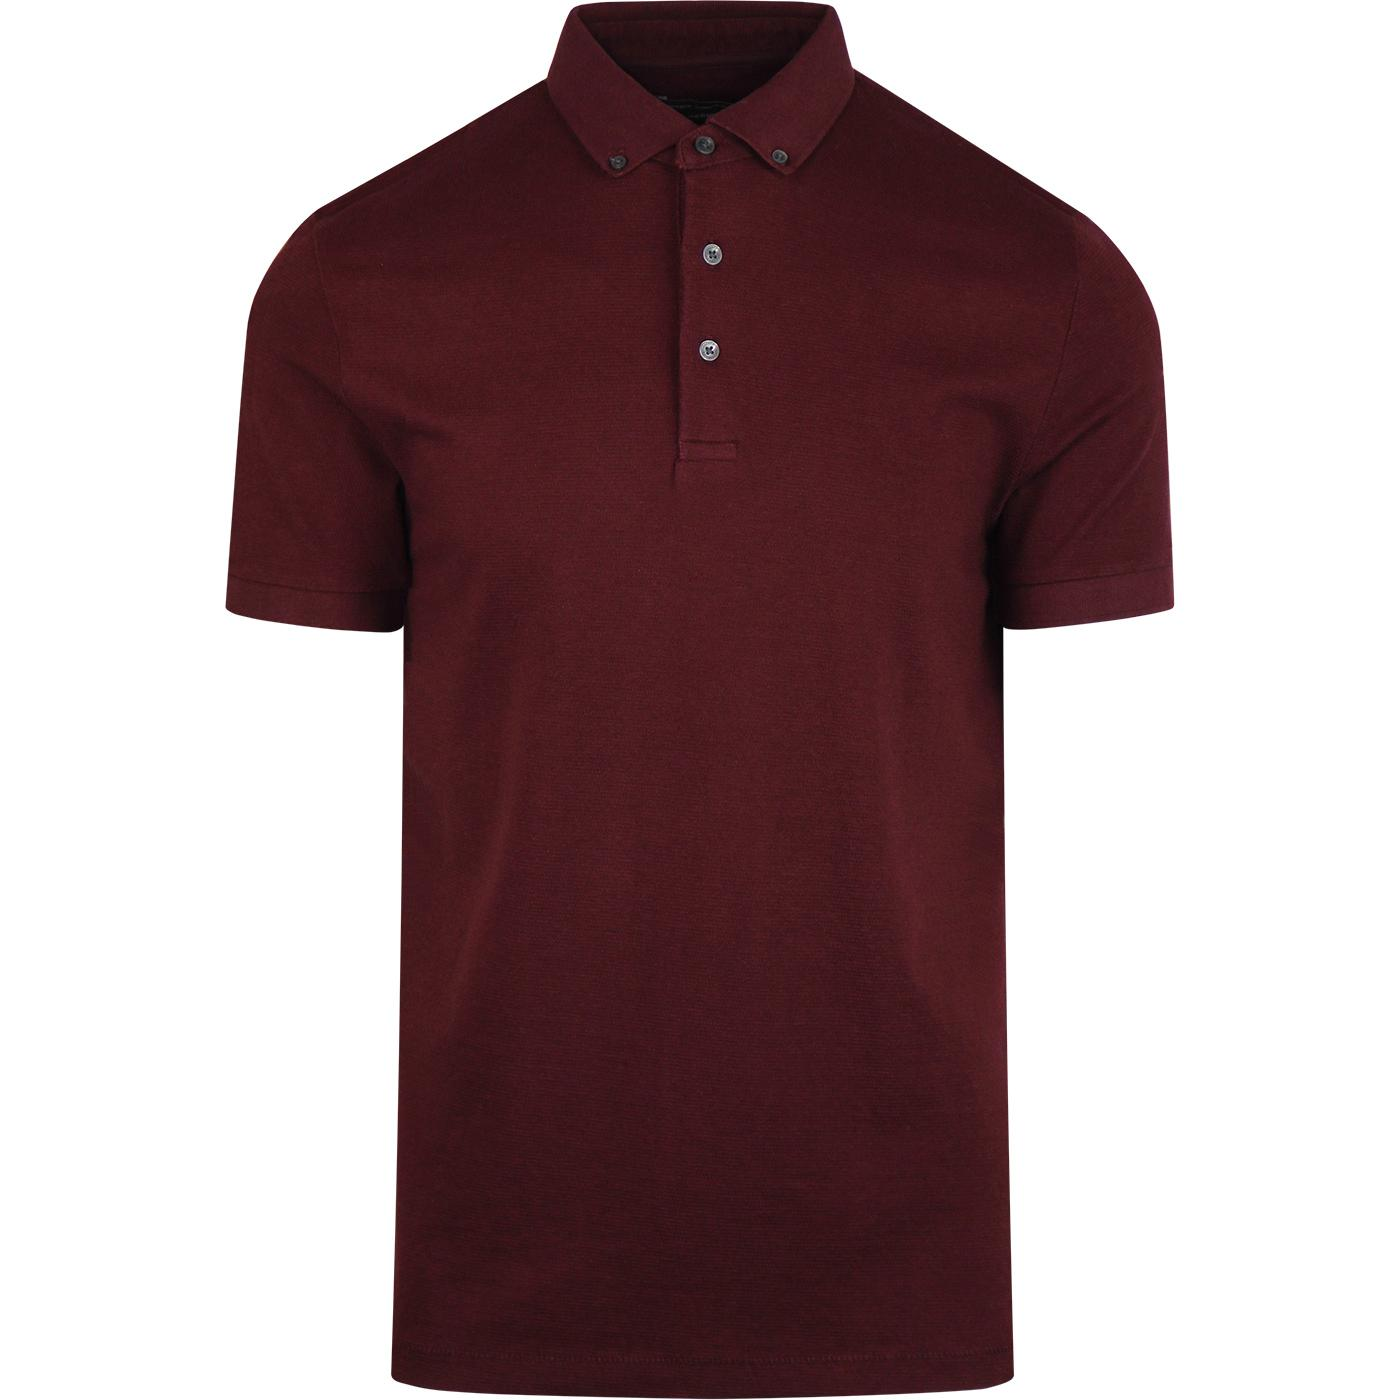 Parched FRENCH CONNECTION Mod Textured Polo BORDO